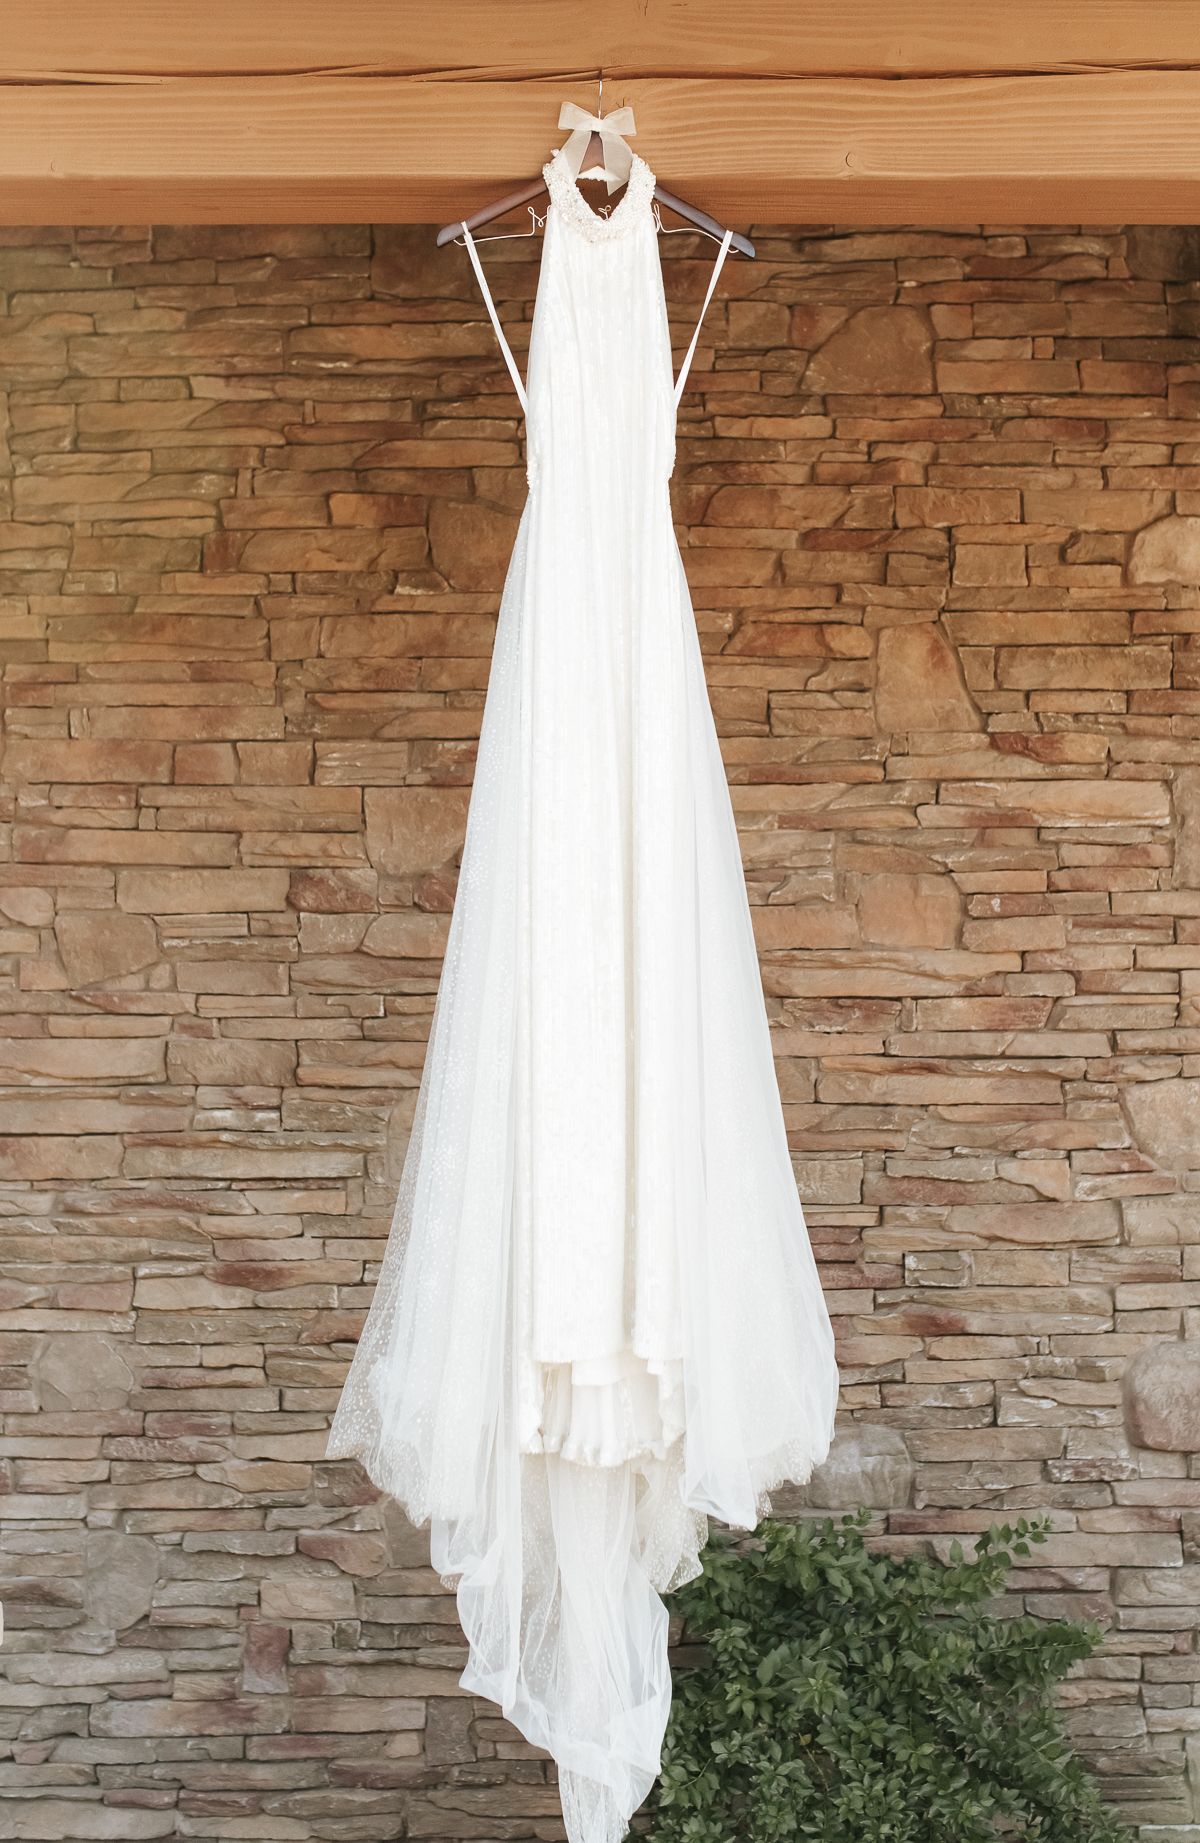 Megan Claire Photography | Arizona Wedding Photographer.  Elegant Scottsdale Backyard Wedding Dress